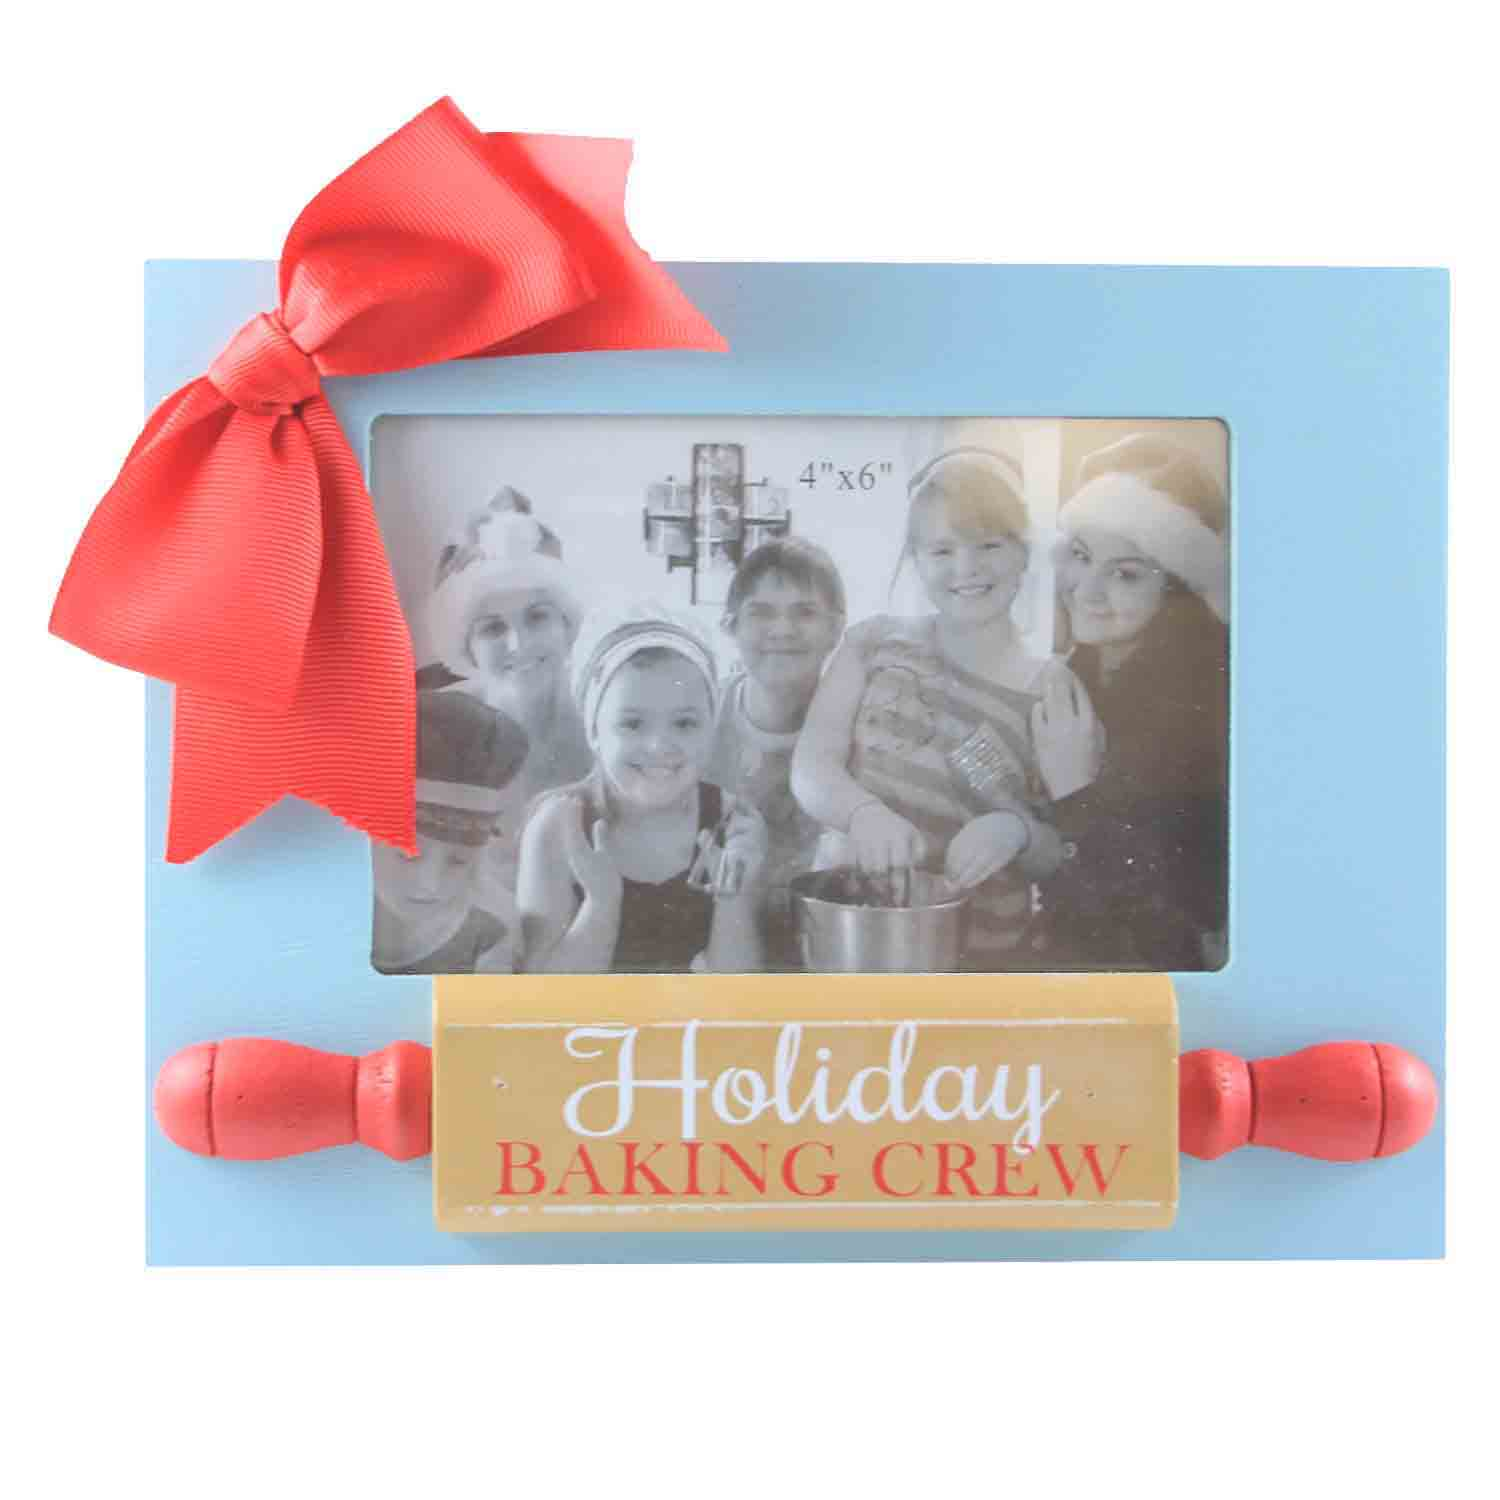 Holiday Baking Crew Photo Frame